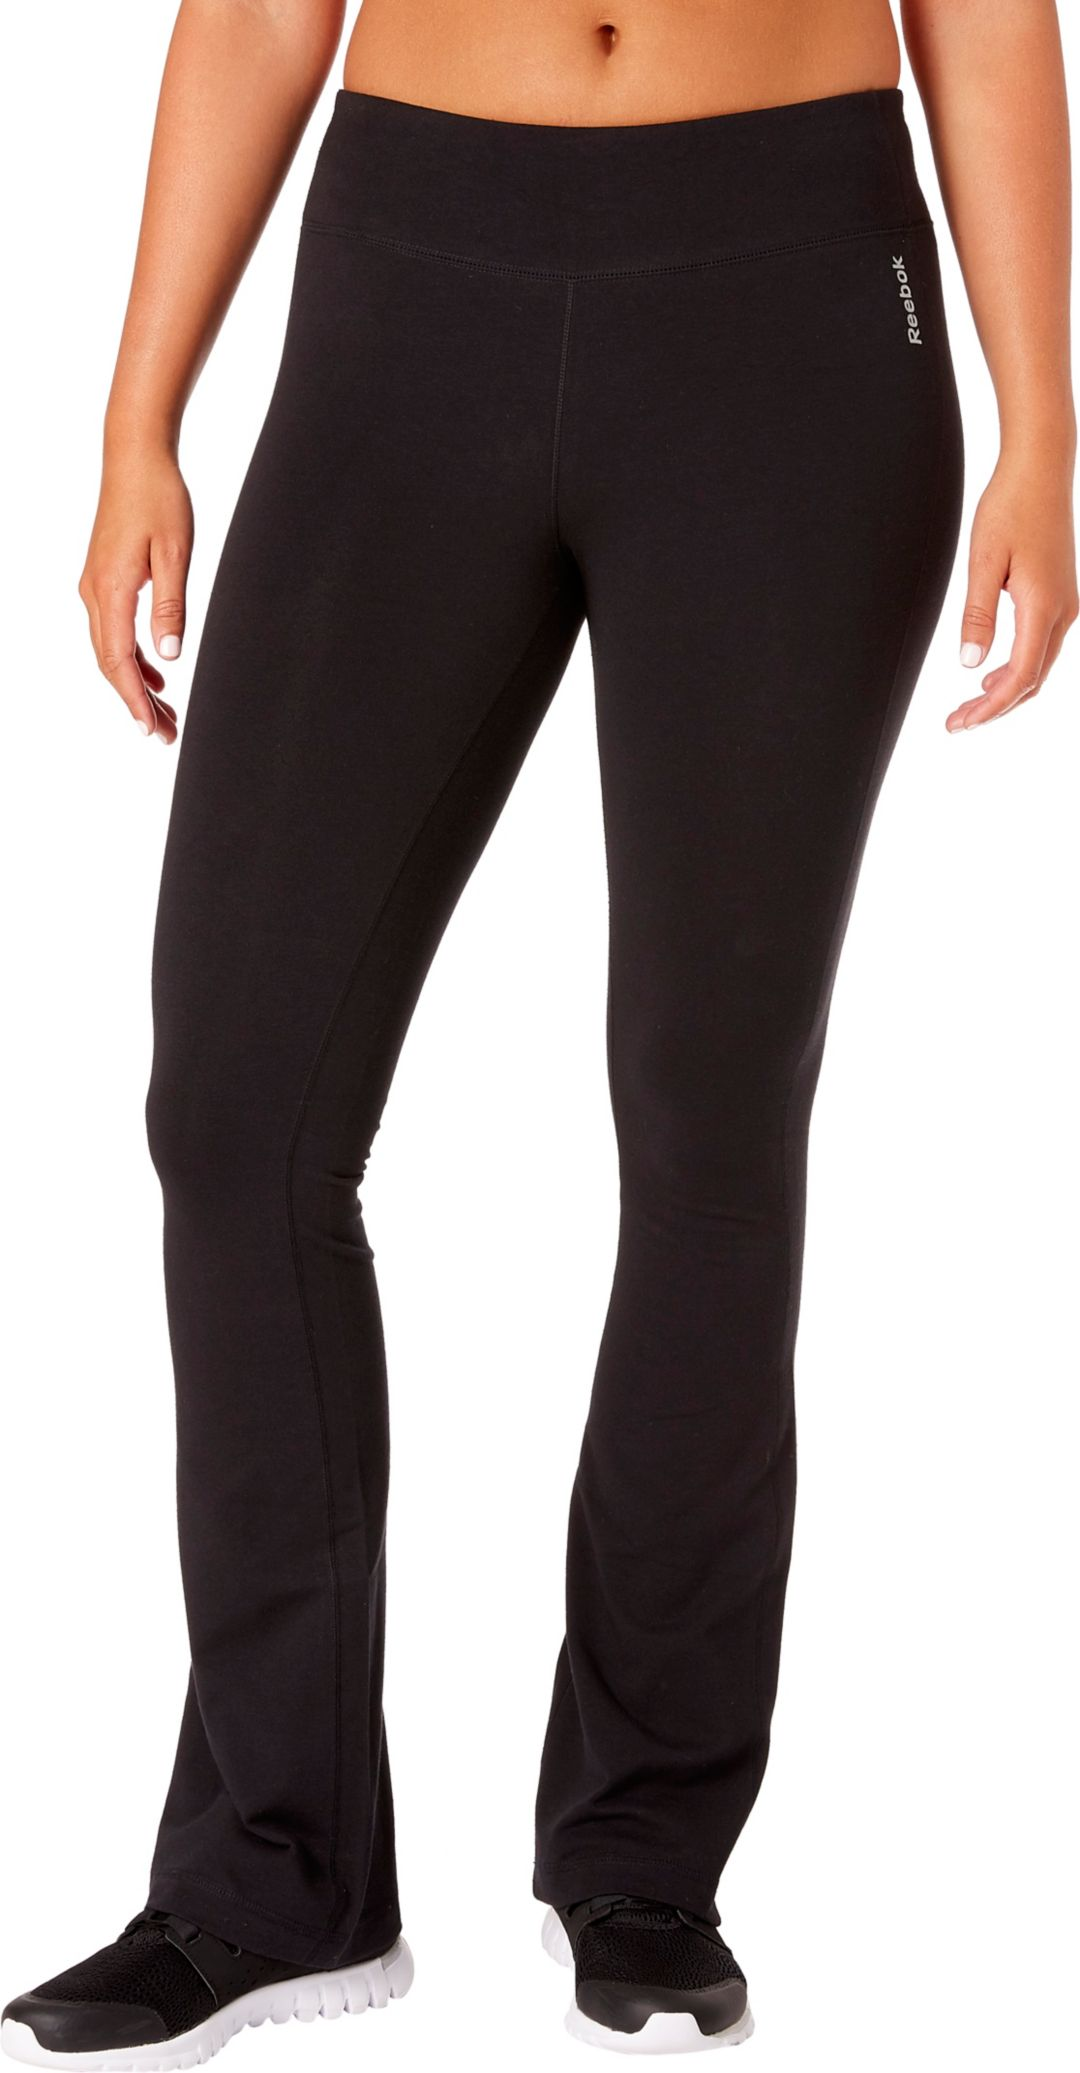 1610a01a98f14 Reebok Women's Stretch Cotton Flare Pants | DICK'S Sporting Goods